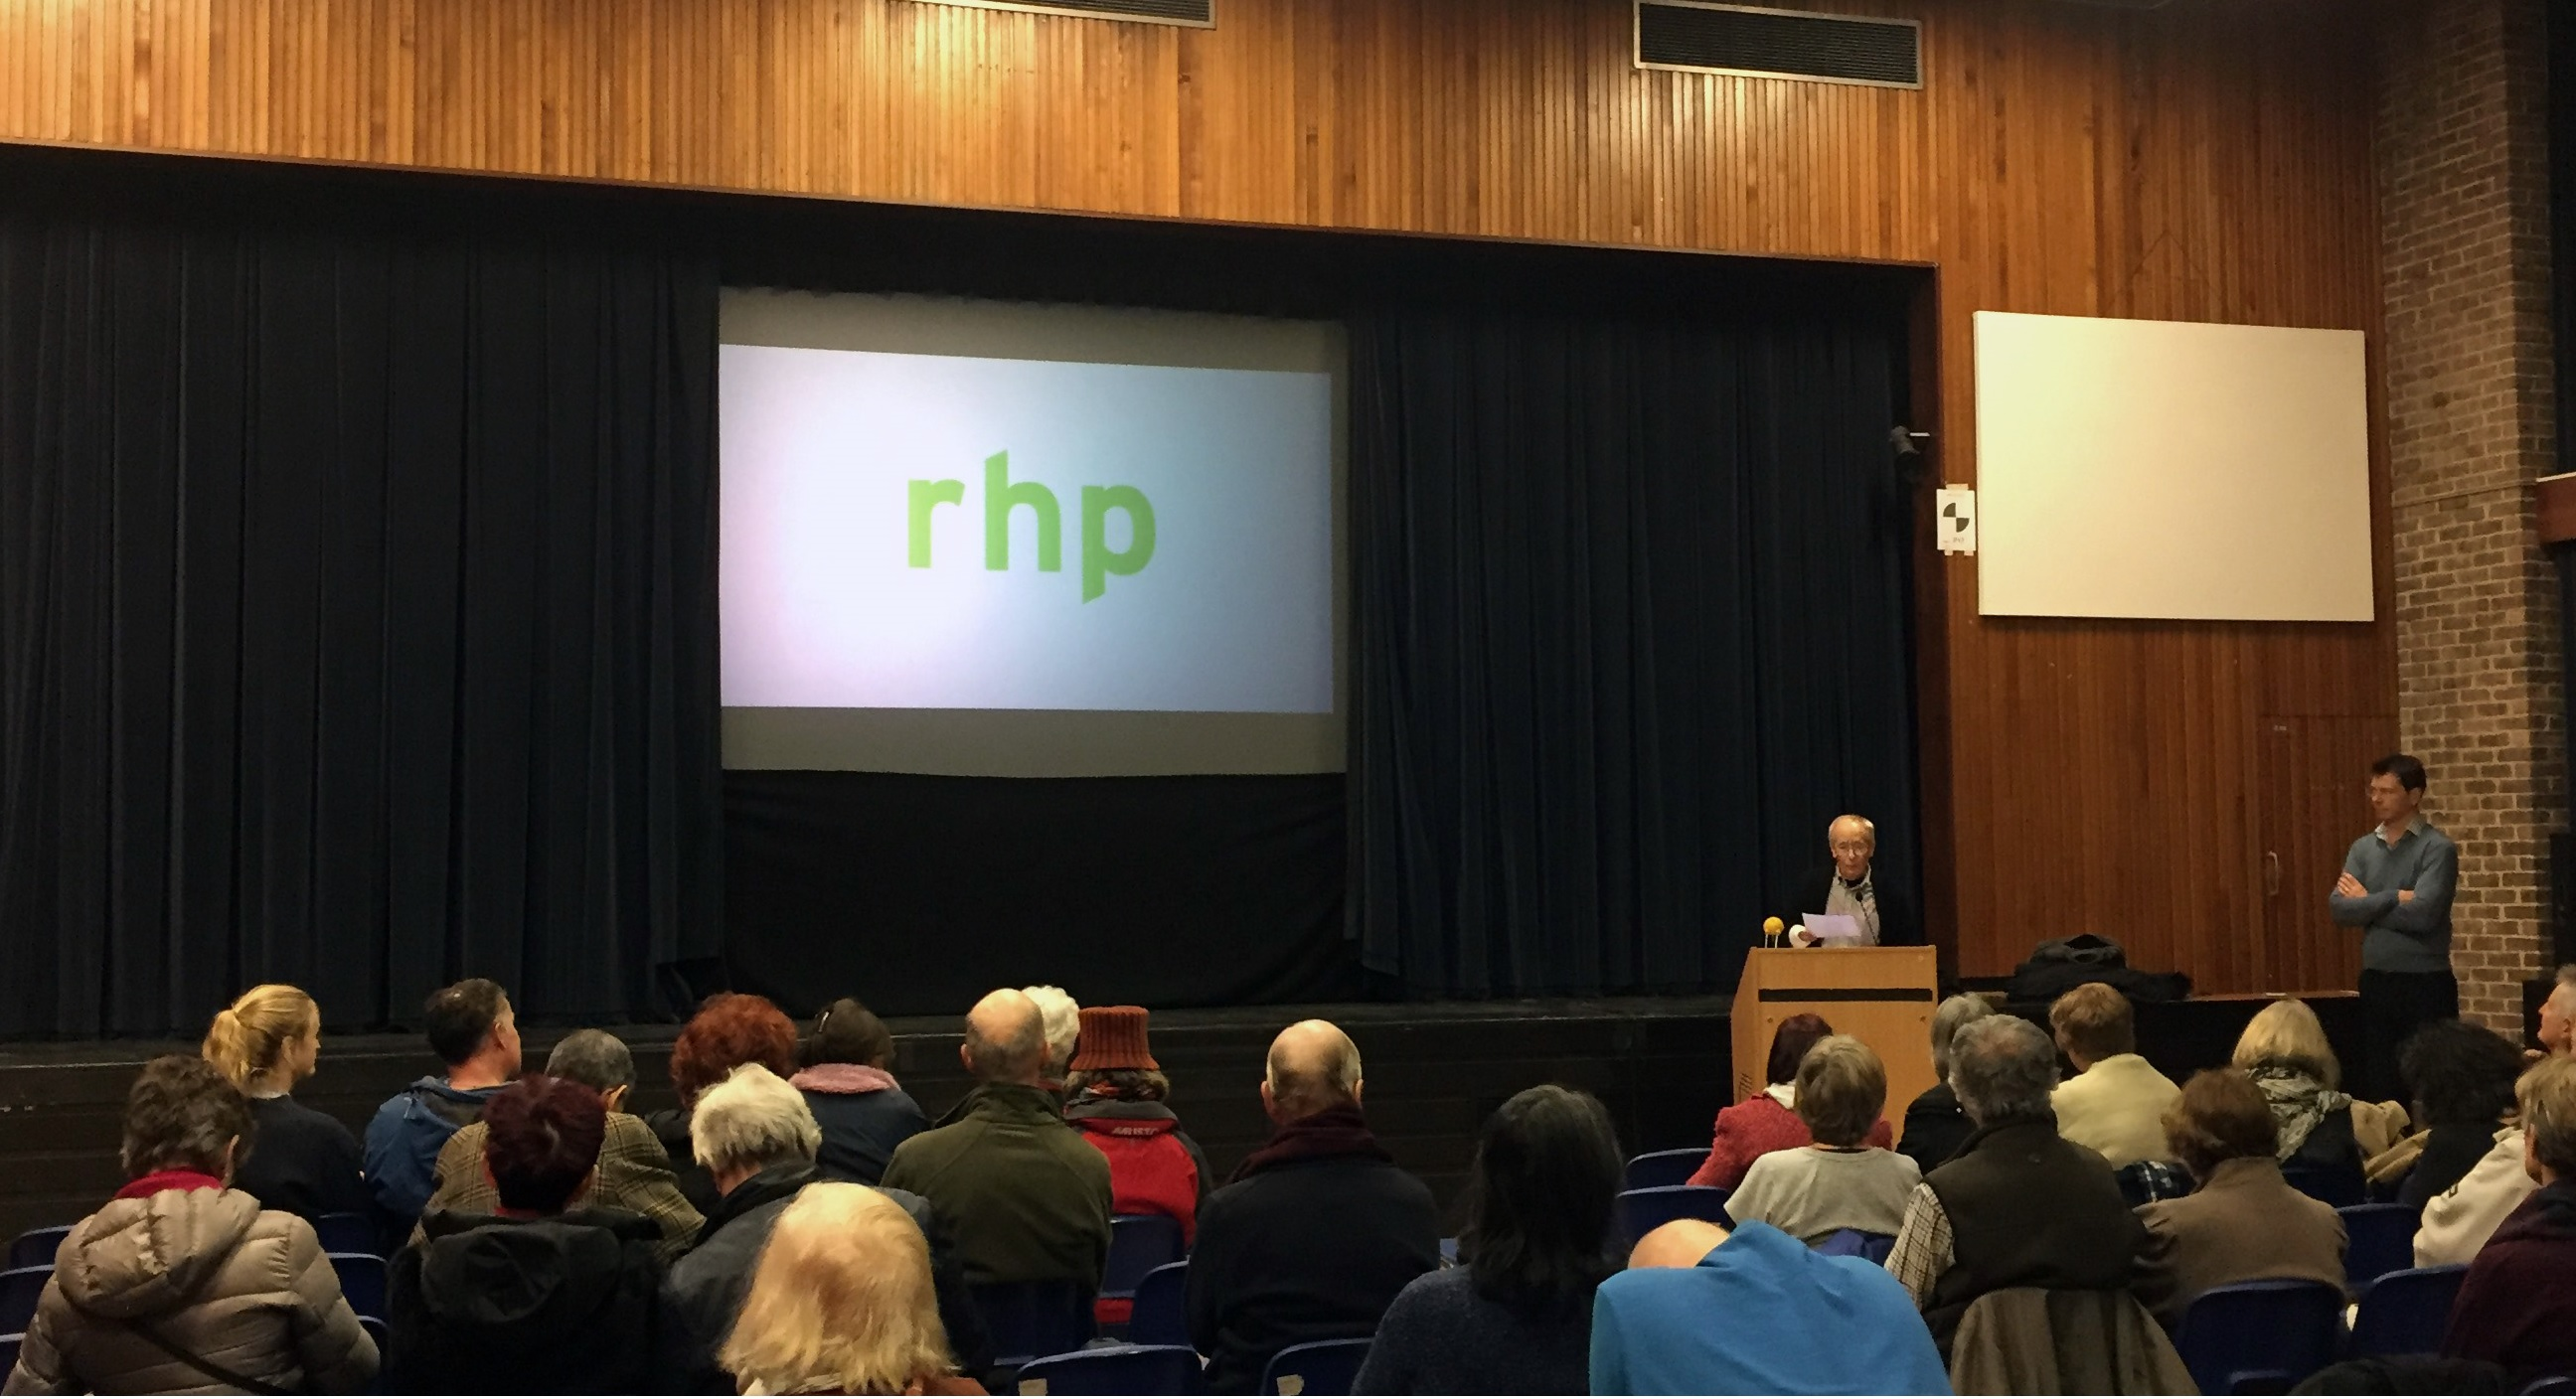 Care for the dying: Nic Hoar gives Regency Society lecture